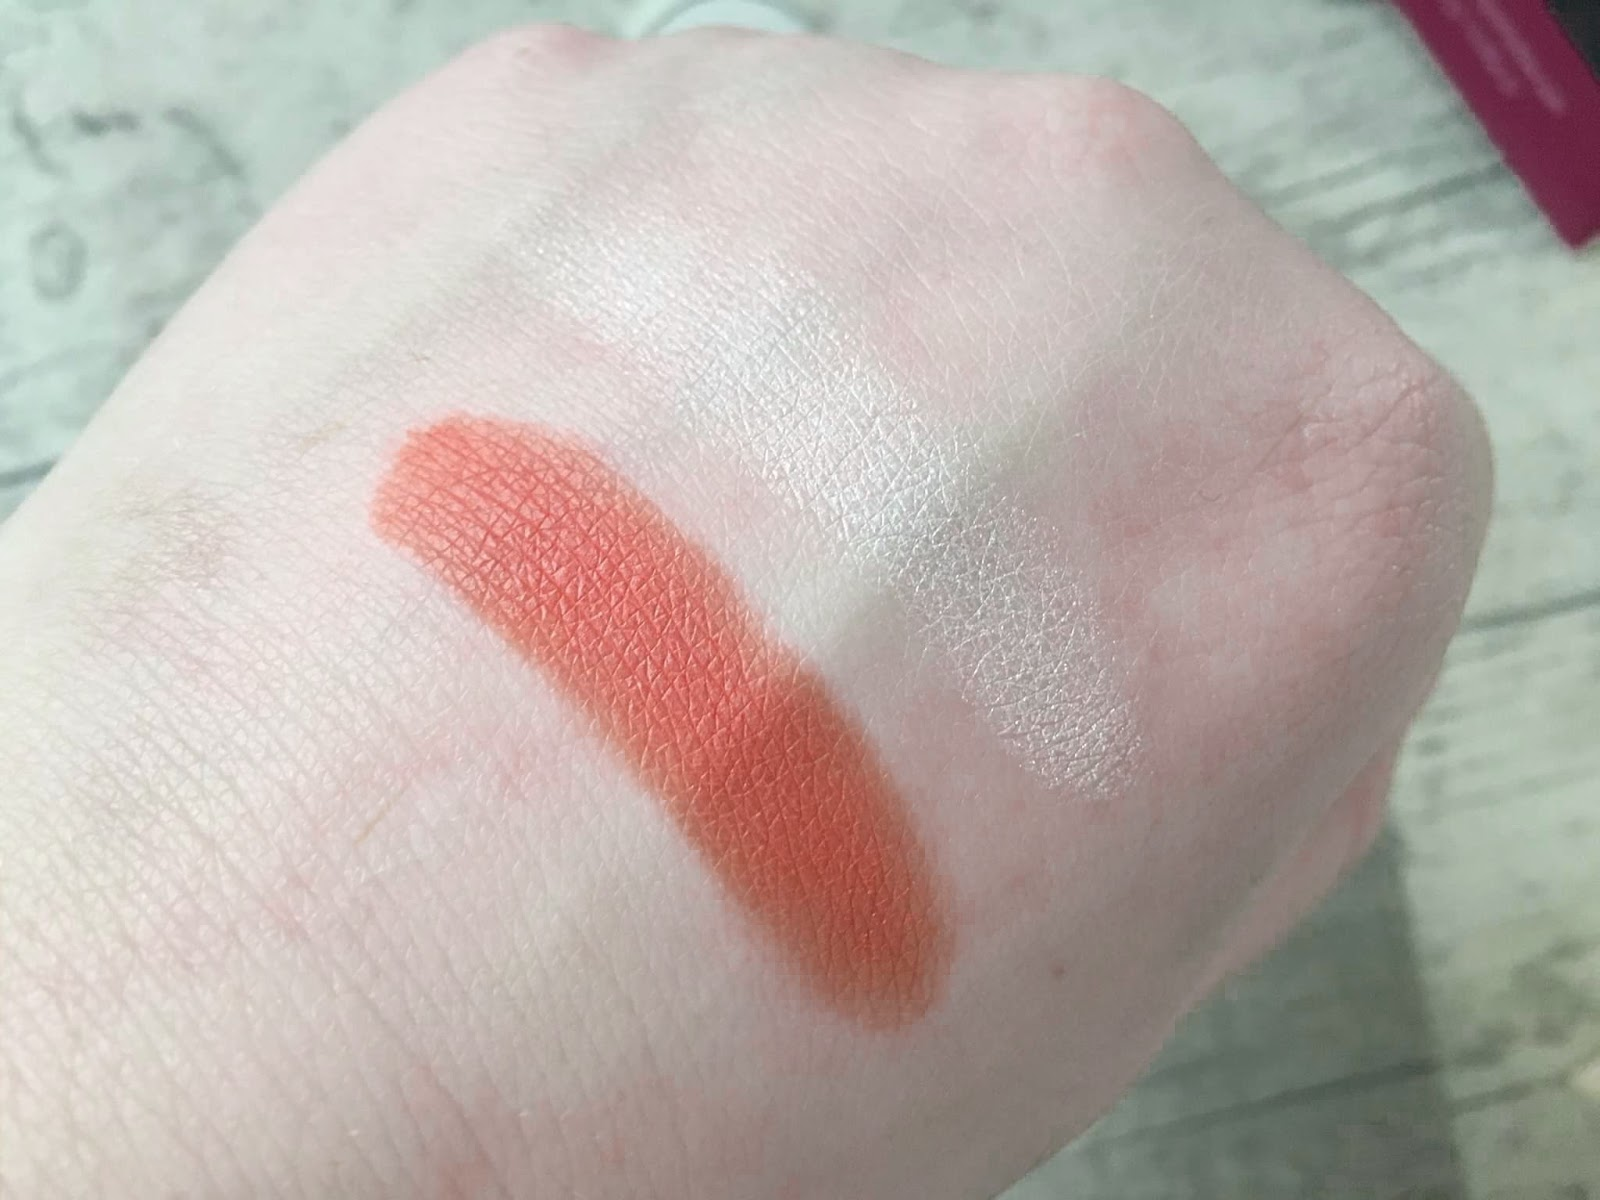 Makeup Geek Poppy and Ice Queen Swatches